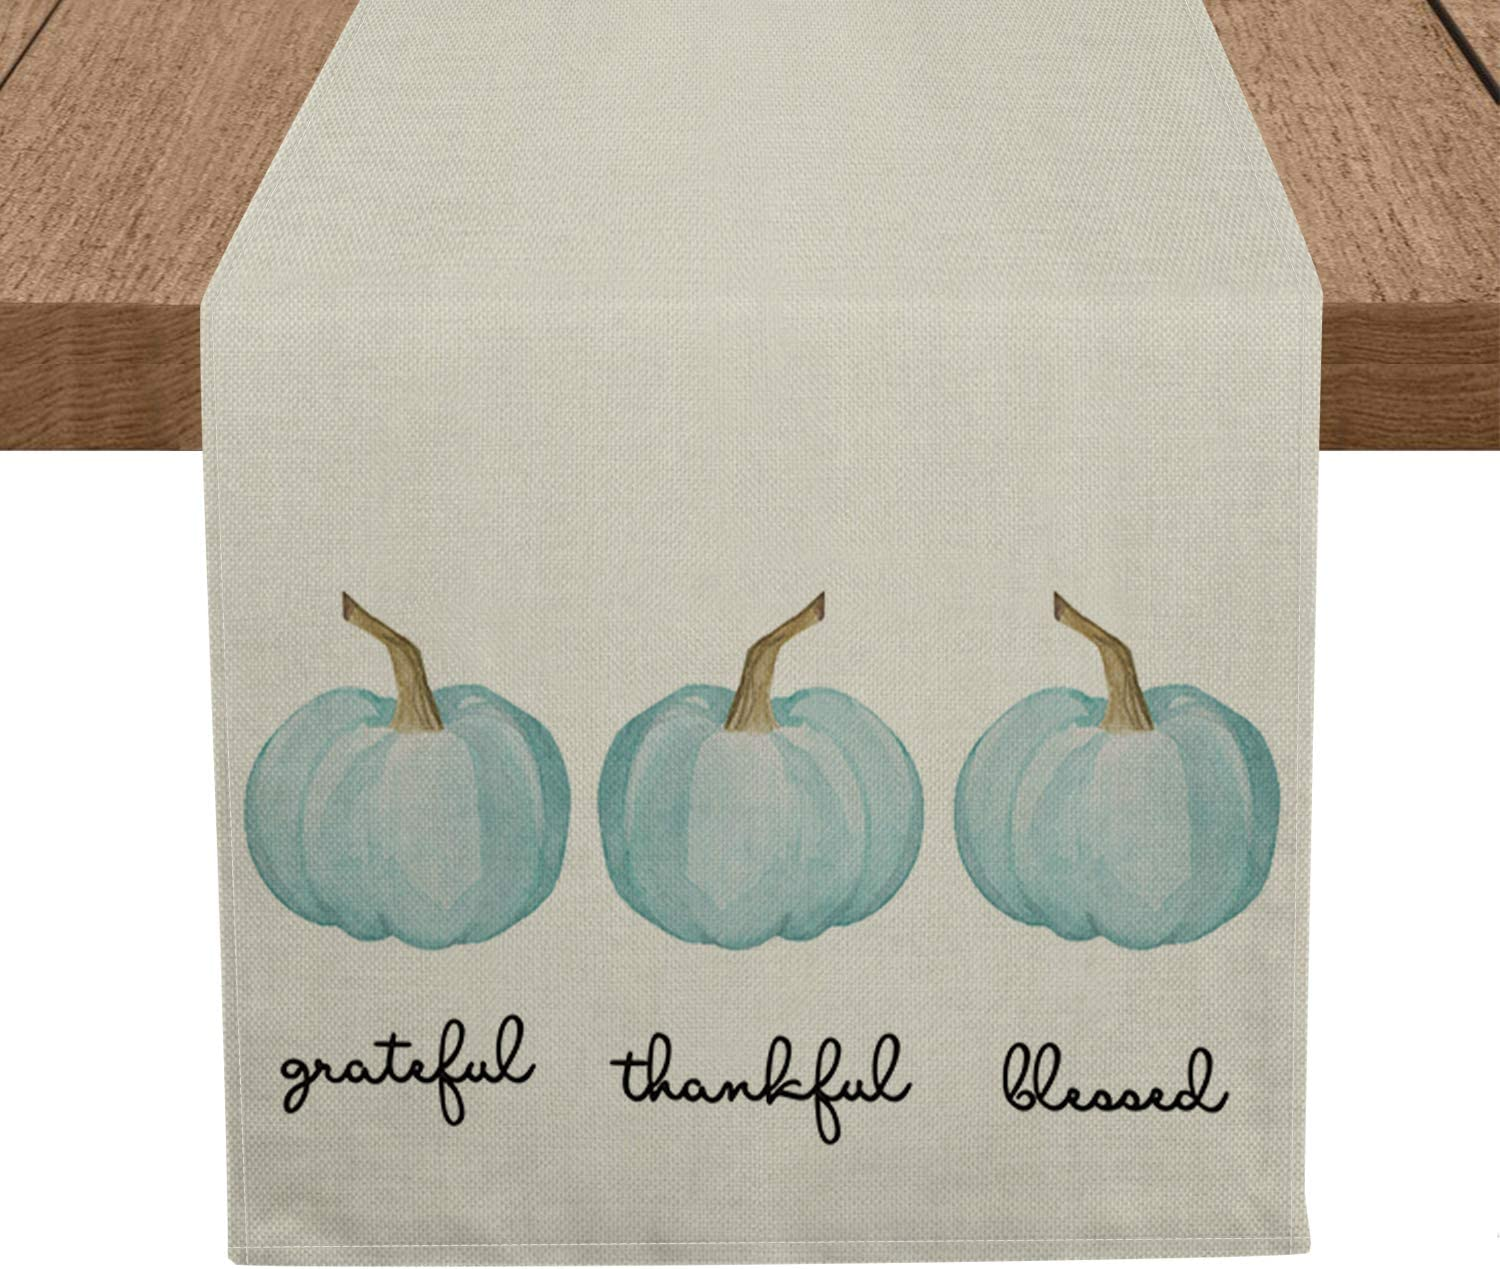 Artoid Mode Grateful Thankful Blessed Pumpkins Table Runner, Seasonal Fall Harvest Tablecloth Kitchen Dining Table Linen for Indoor Outdoor Home Party Decor 13 x 72 Inch